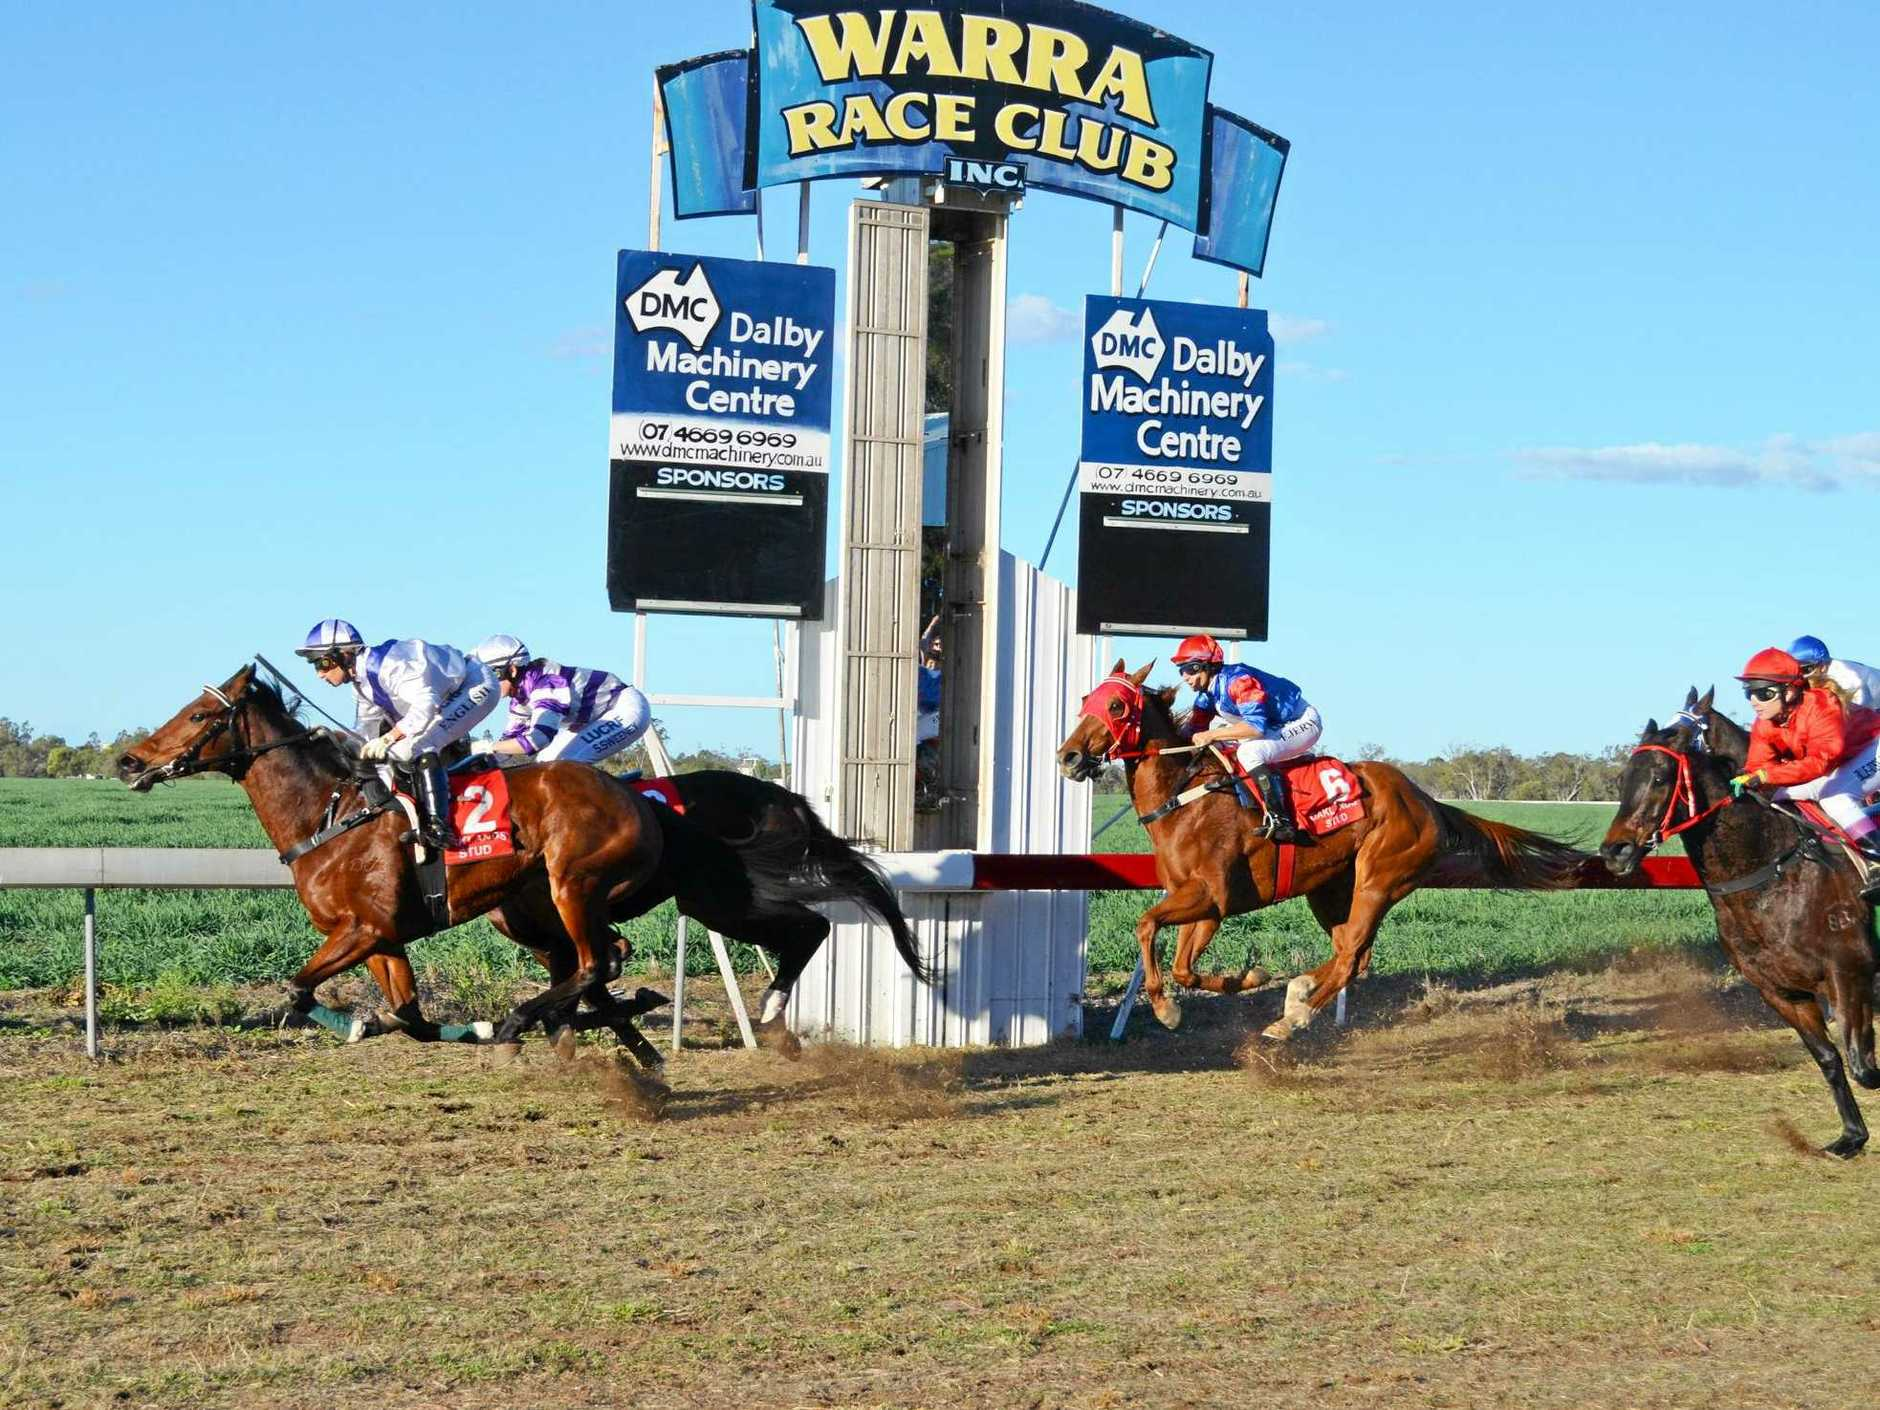 FIGHT TO FINISH: Race will be on for both experienced and rookie riders at the Warra Races with children's barrel horse racing included in the entertainment program.